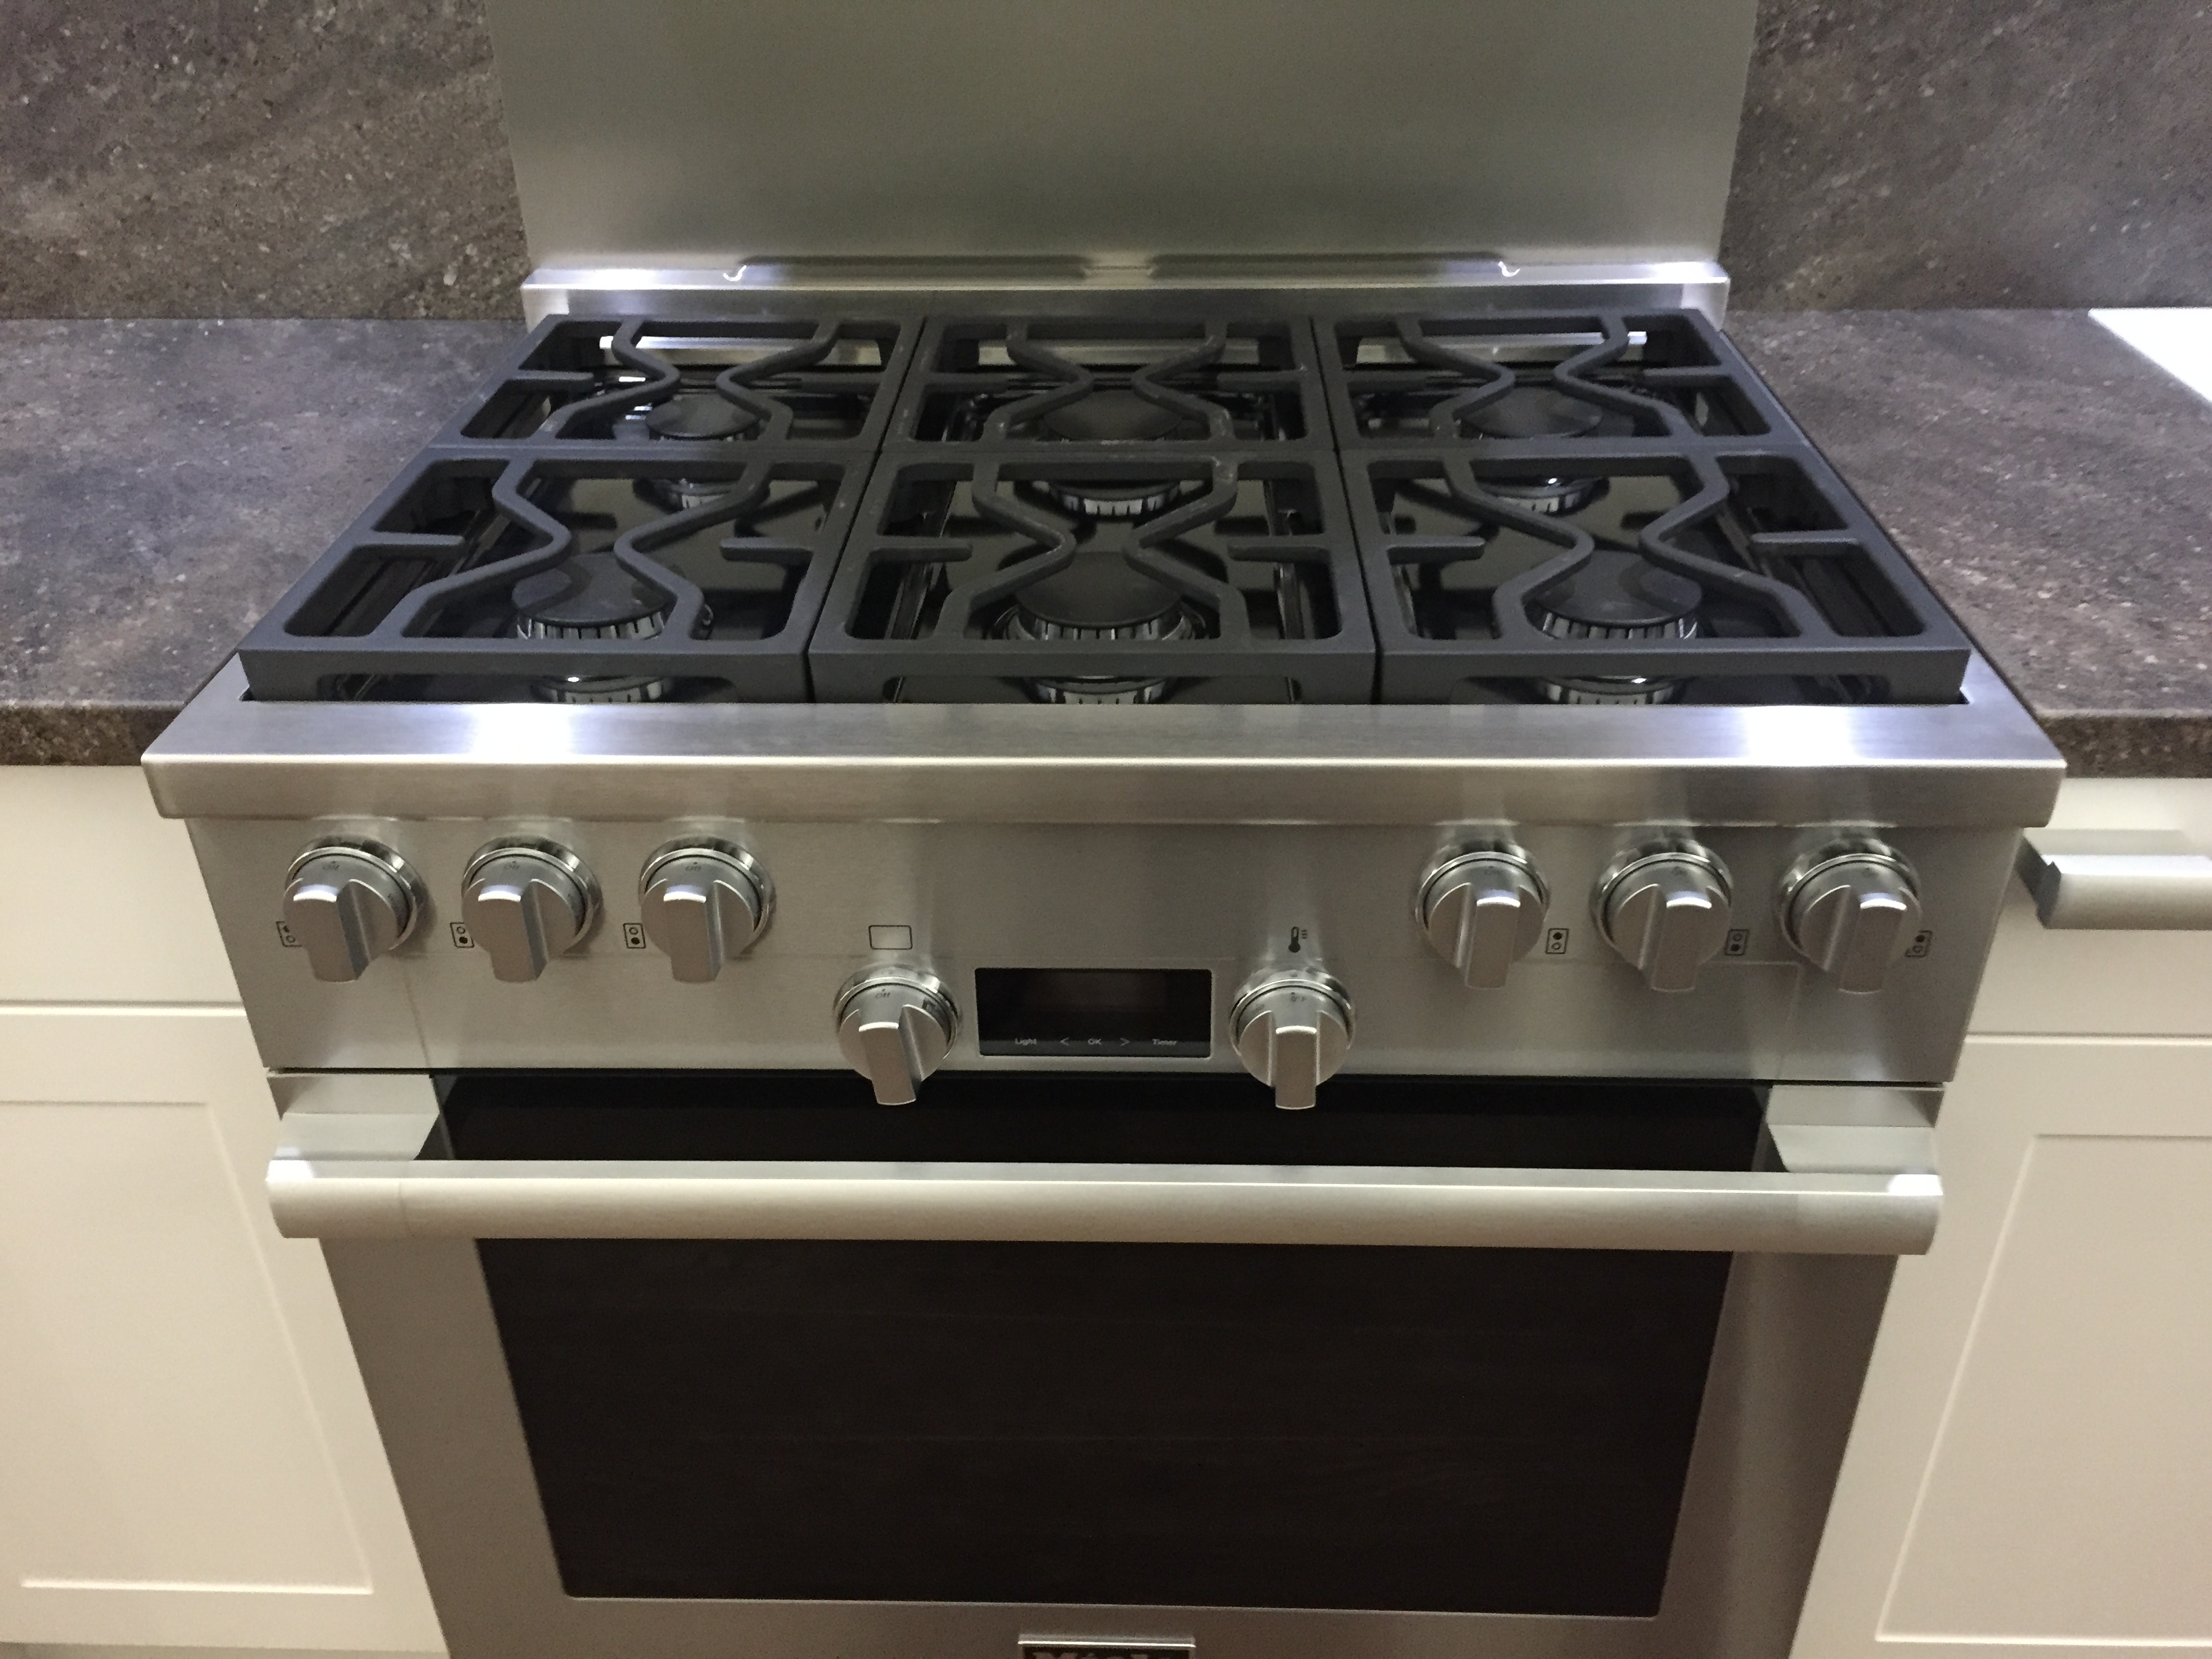 Miele Ovens And Cooktops ~ Miele ranges lansdale kitchen appliances kieffer